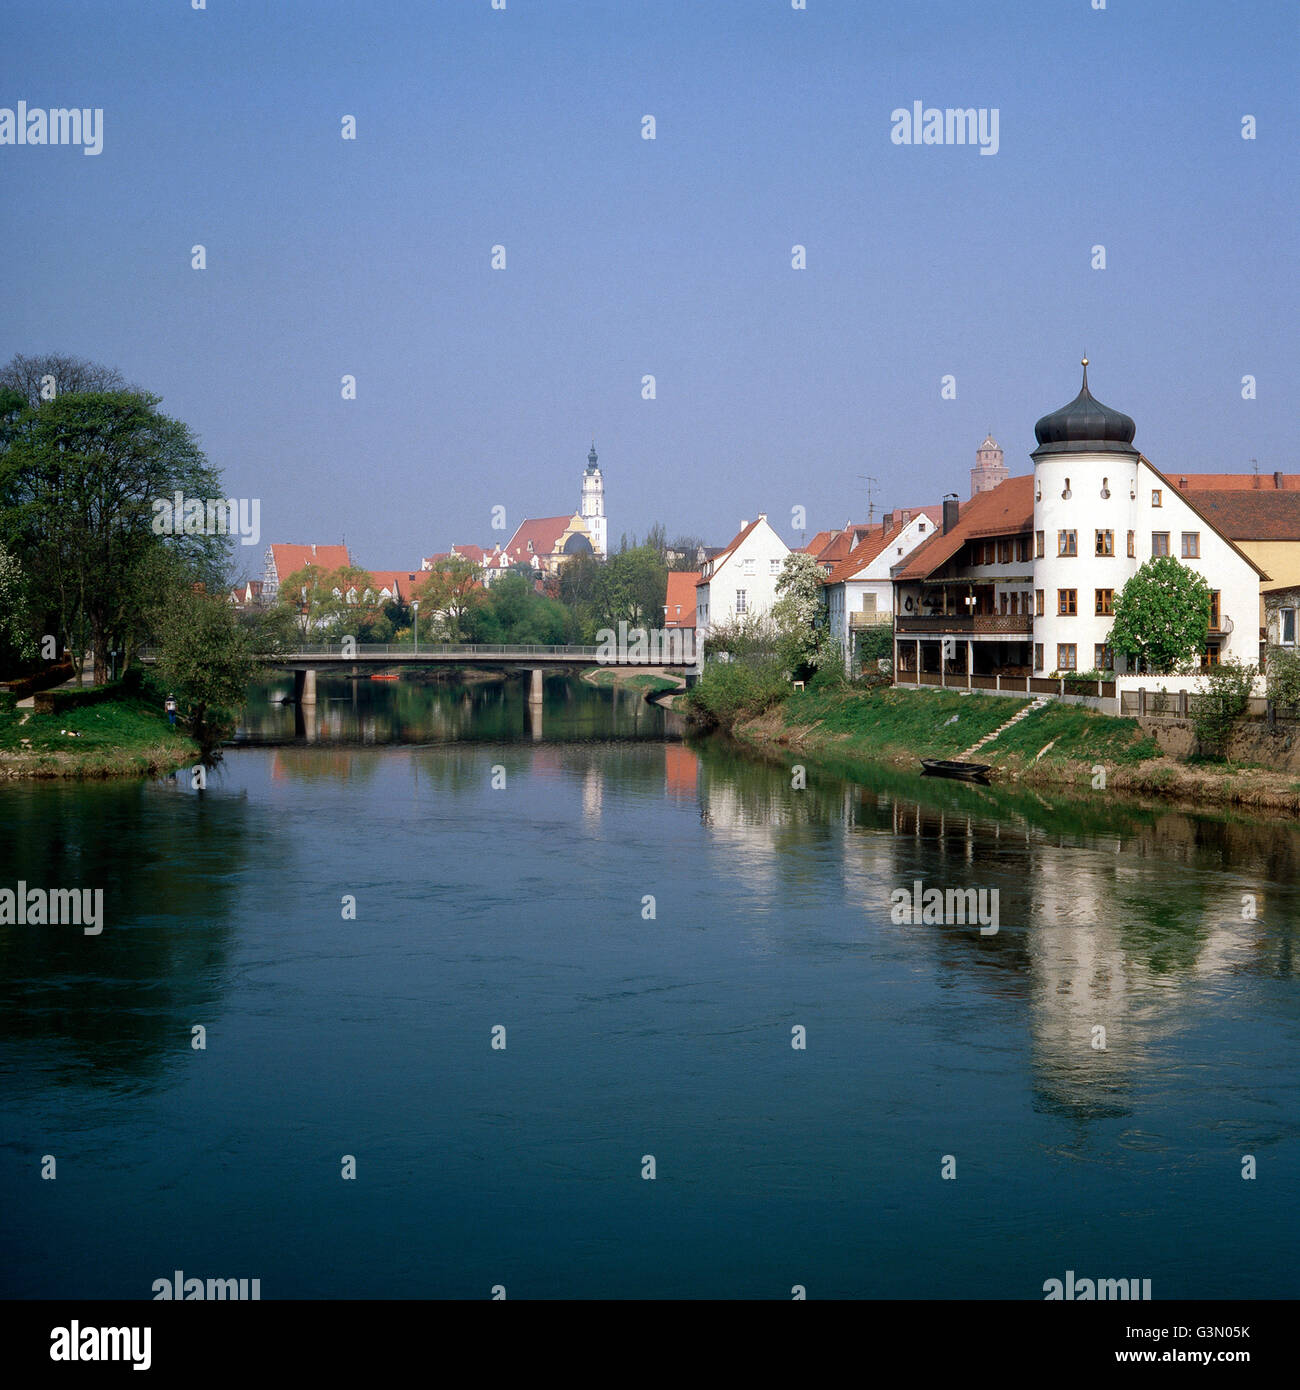 donauworth germany stockfotos donauworth germany bilder seite 2 alamy. Black Bedroom Furniture Sets. Home Design Ideas